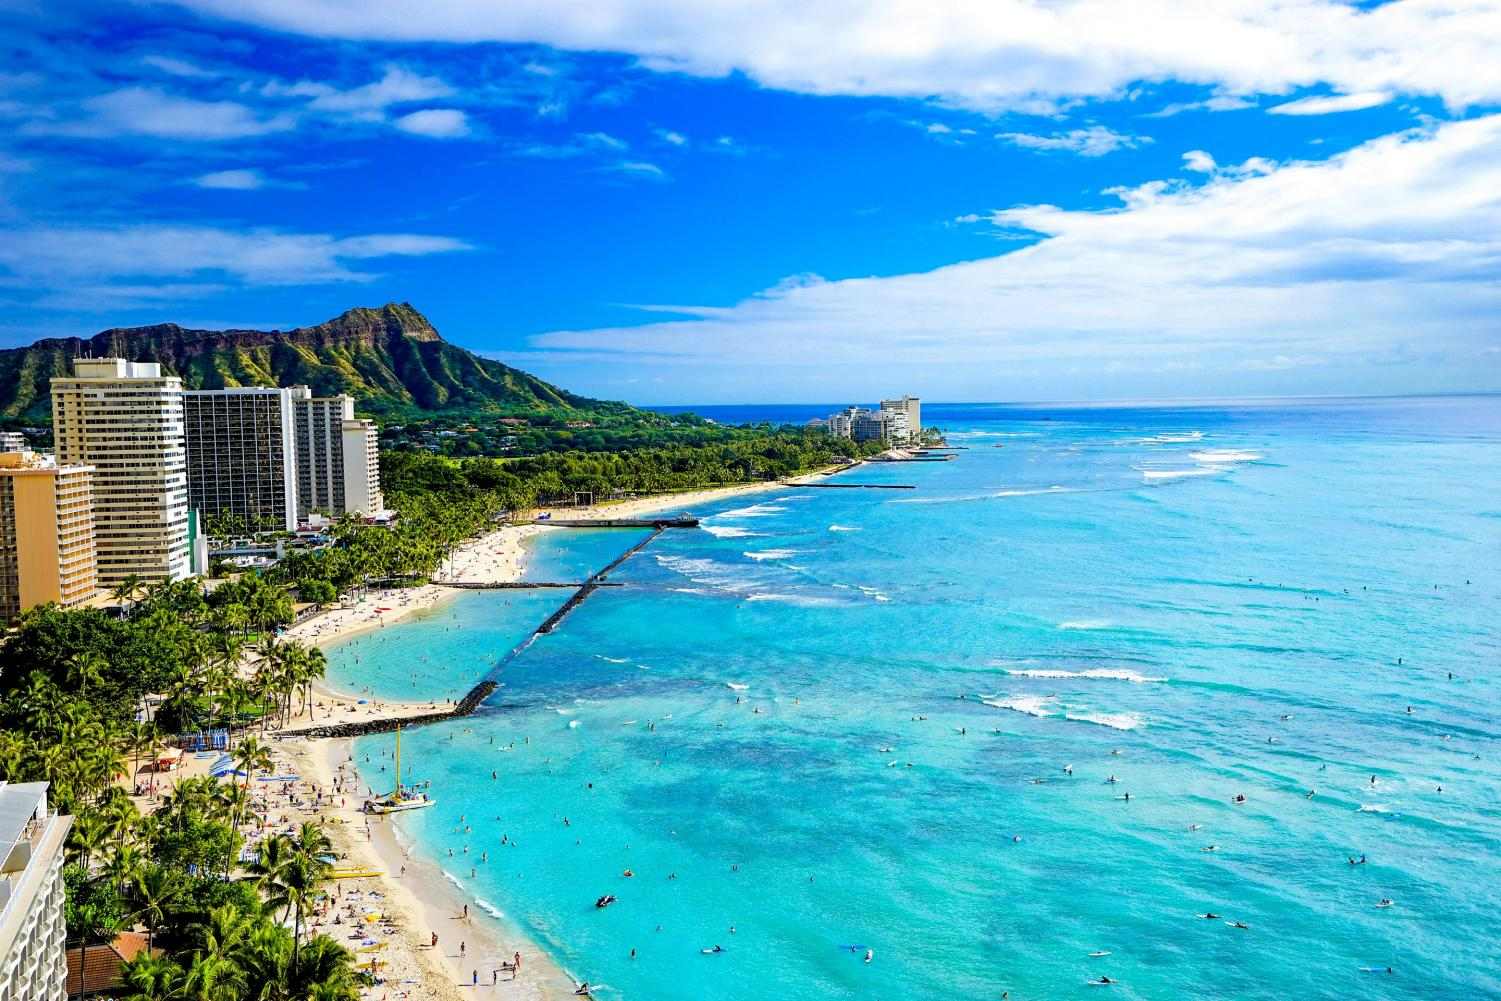 Luther students traveled to the island of Hawai'i and Oahu in Hawai'i to study multiculturalism in education during J-term of 2019.